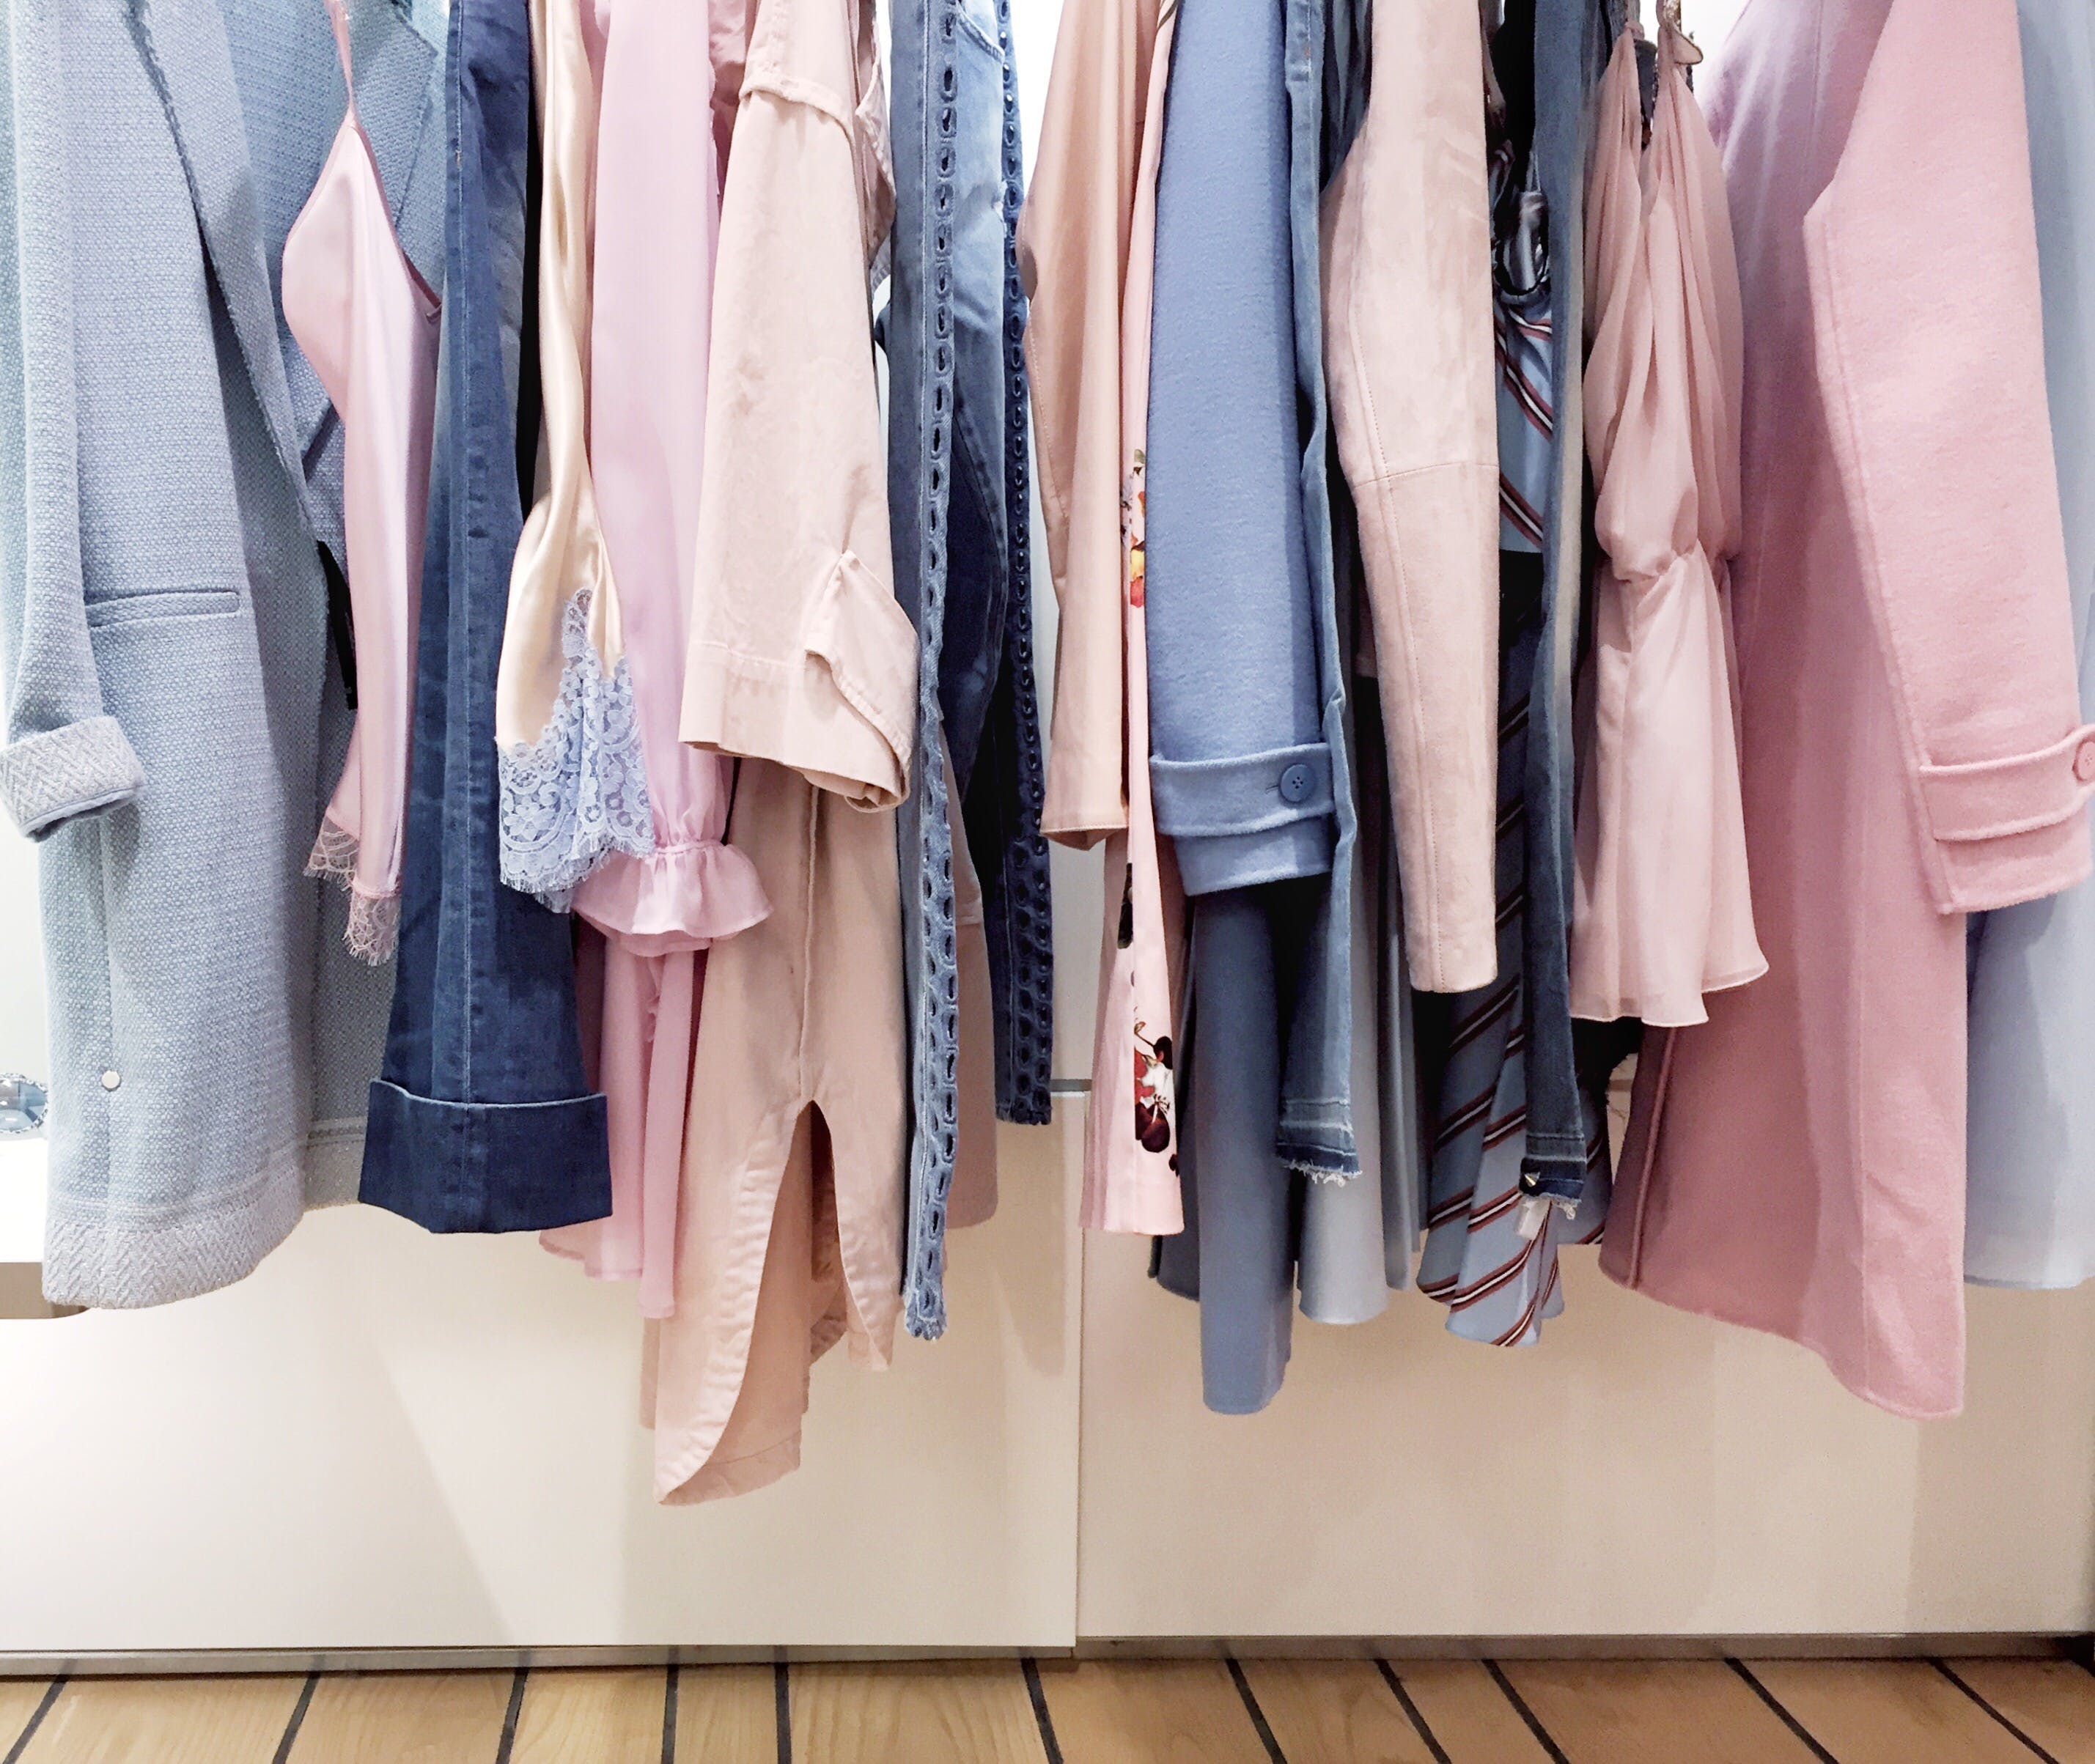 The Best Ways to Donate or Sell Your Stuff in Dallas - PureWow